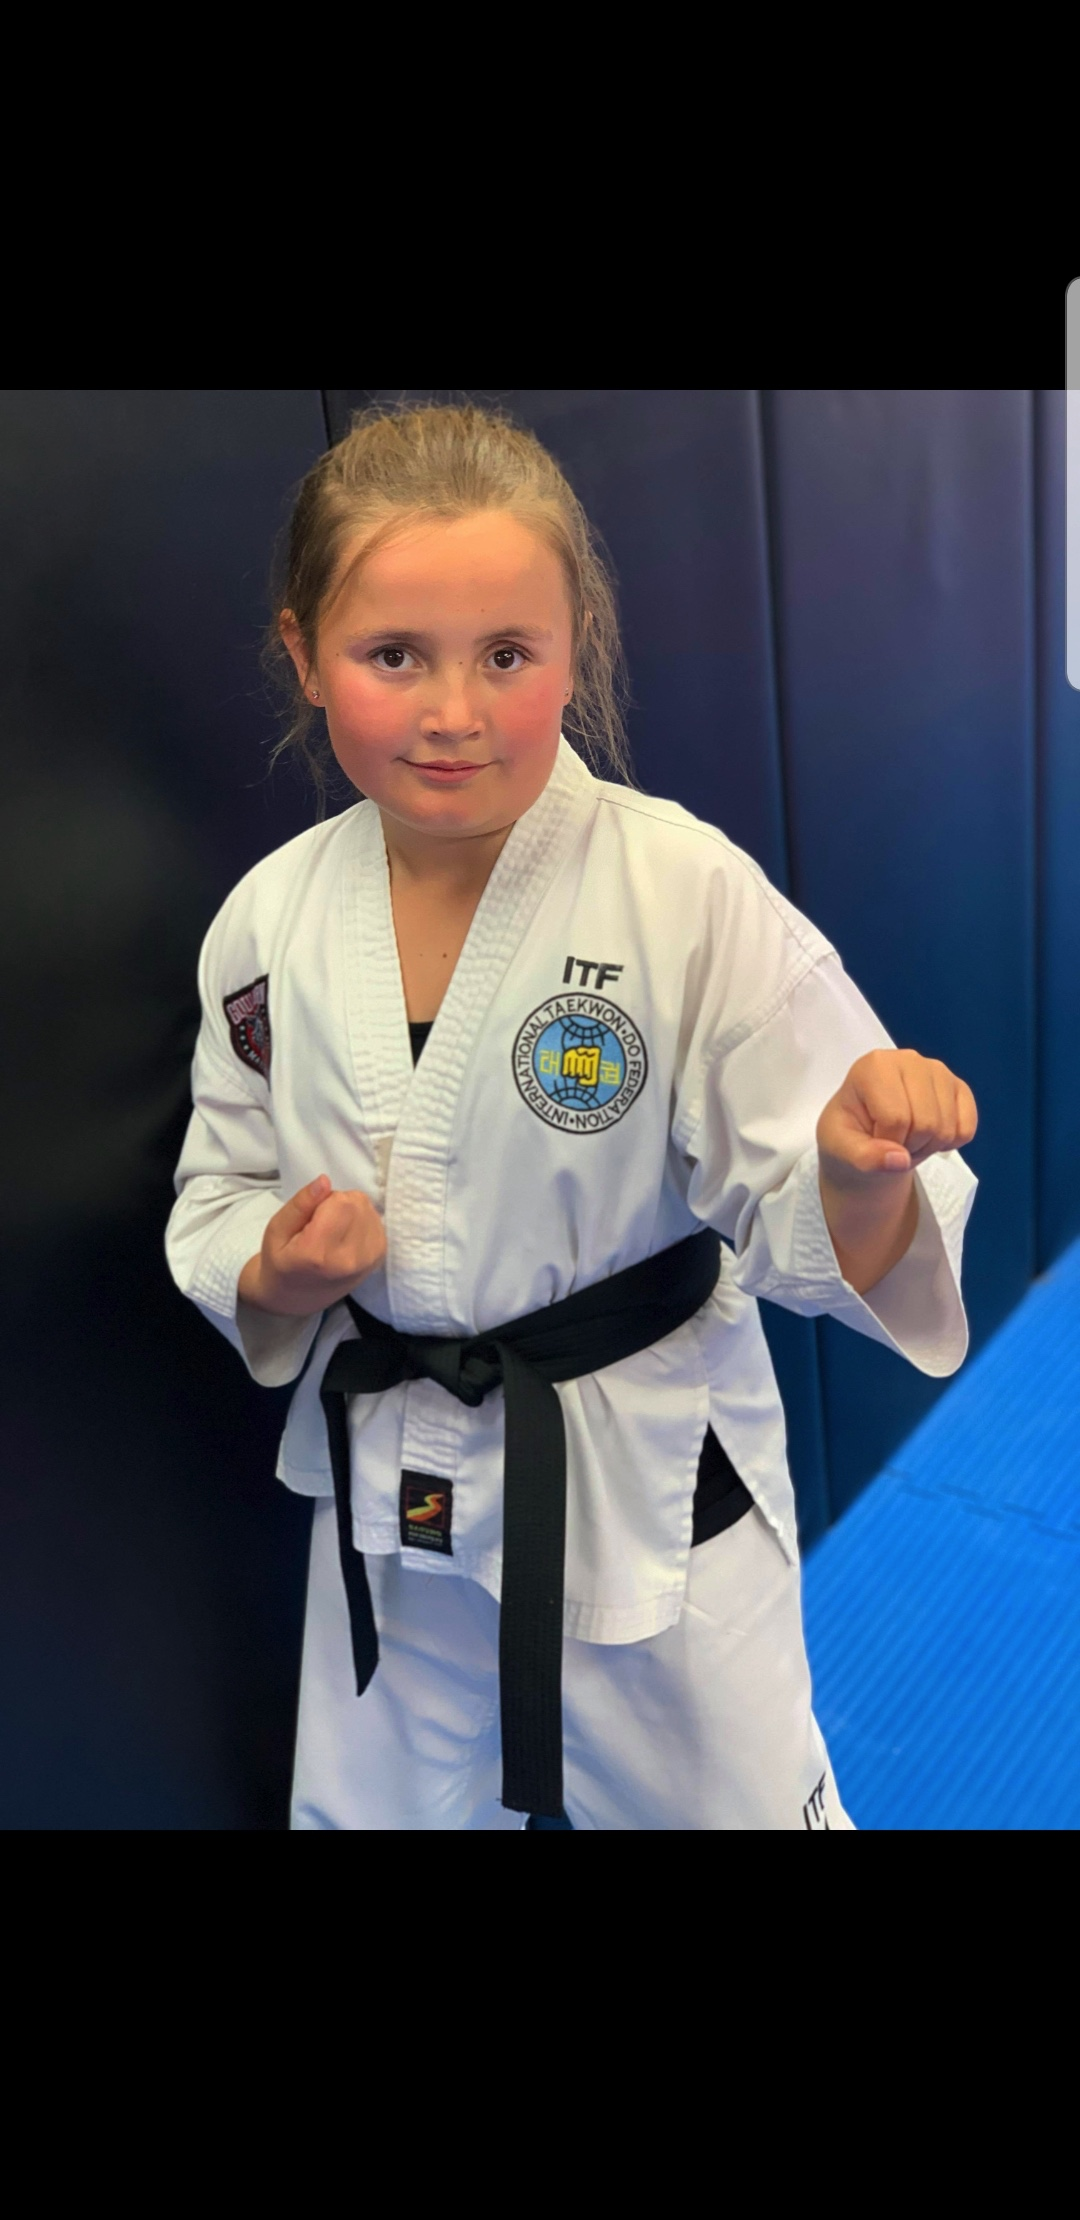 Casey Roberts   Taekwondo has turned out to be just right for me.  My journey started at the age of 5. I was a keen student in the Little Ninja's program.  Taekwondo has given me something to be apart of and a purpose.  It has worked wonders for my self - esteem, my friendships, and my confidence.  I have just  recently attained my 1st degree Blackbelt. 29/ 6 / 19. I am very proud how far I have come.  I want to keep learning.  I want to keep progressing.  I enjoy competing & i am looking forward to many more competition 's in the future.  My brother has been my biggest inspiration. I would like to follow in my brothers foot steps. My brother Cooper is a 2nd degree Blackbelt.